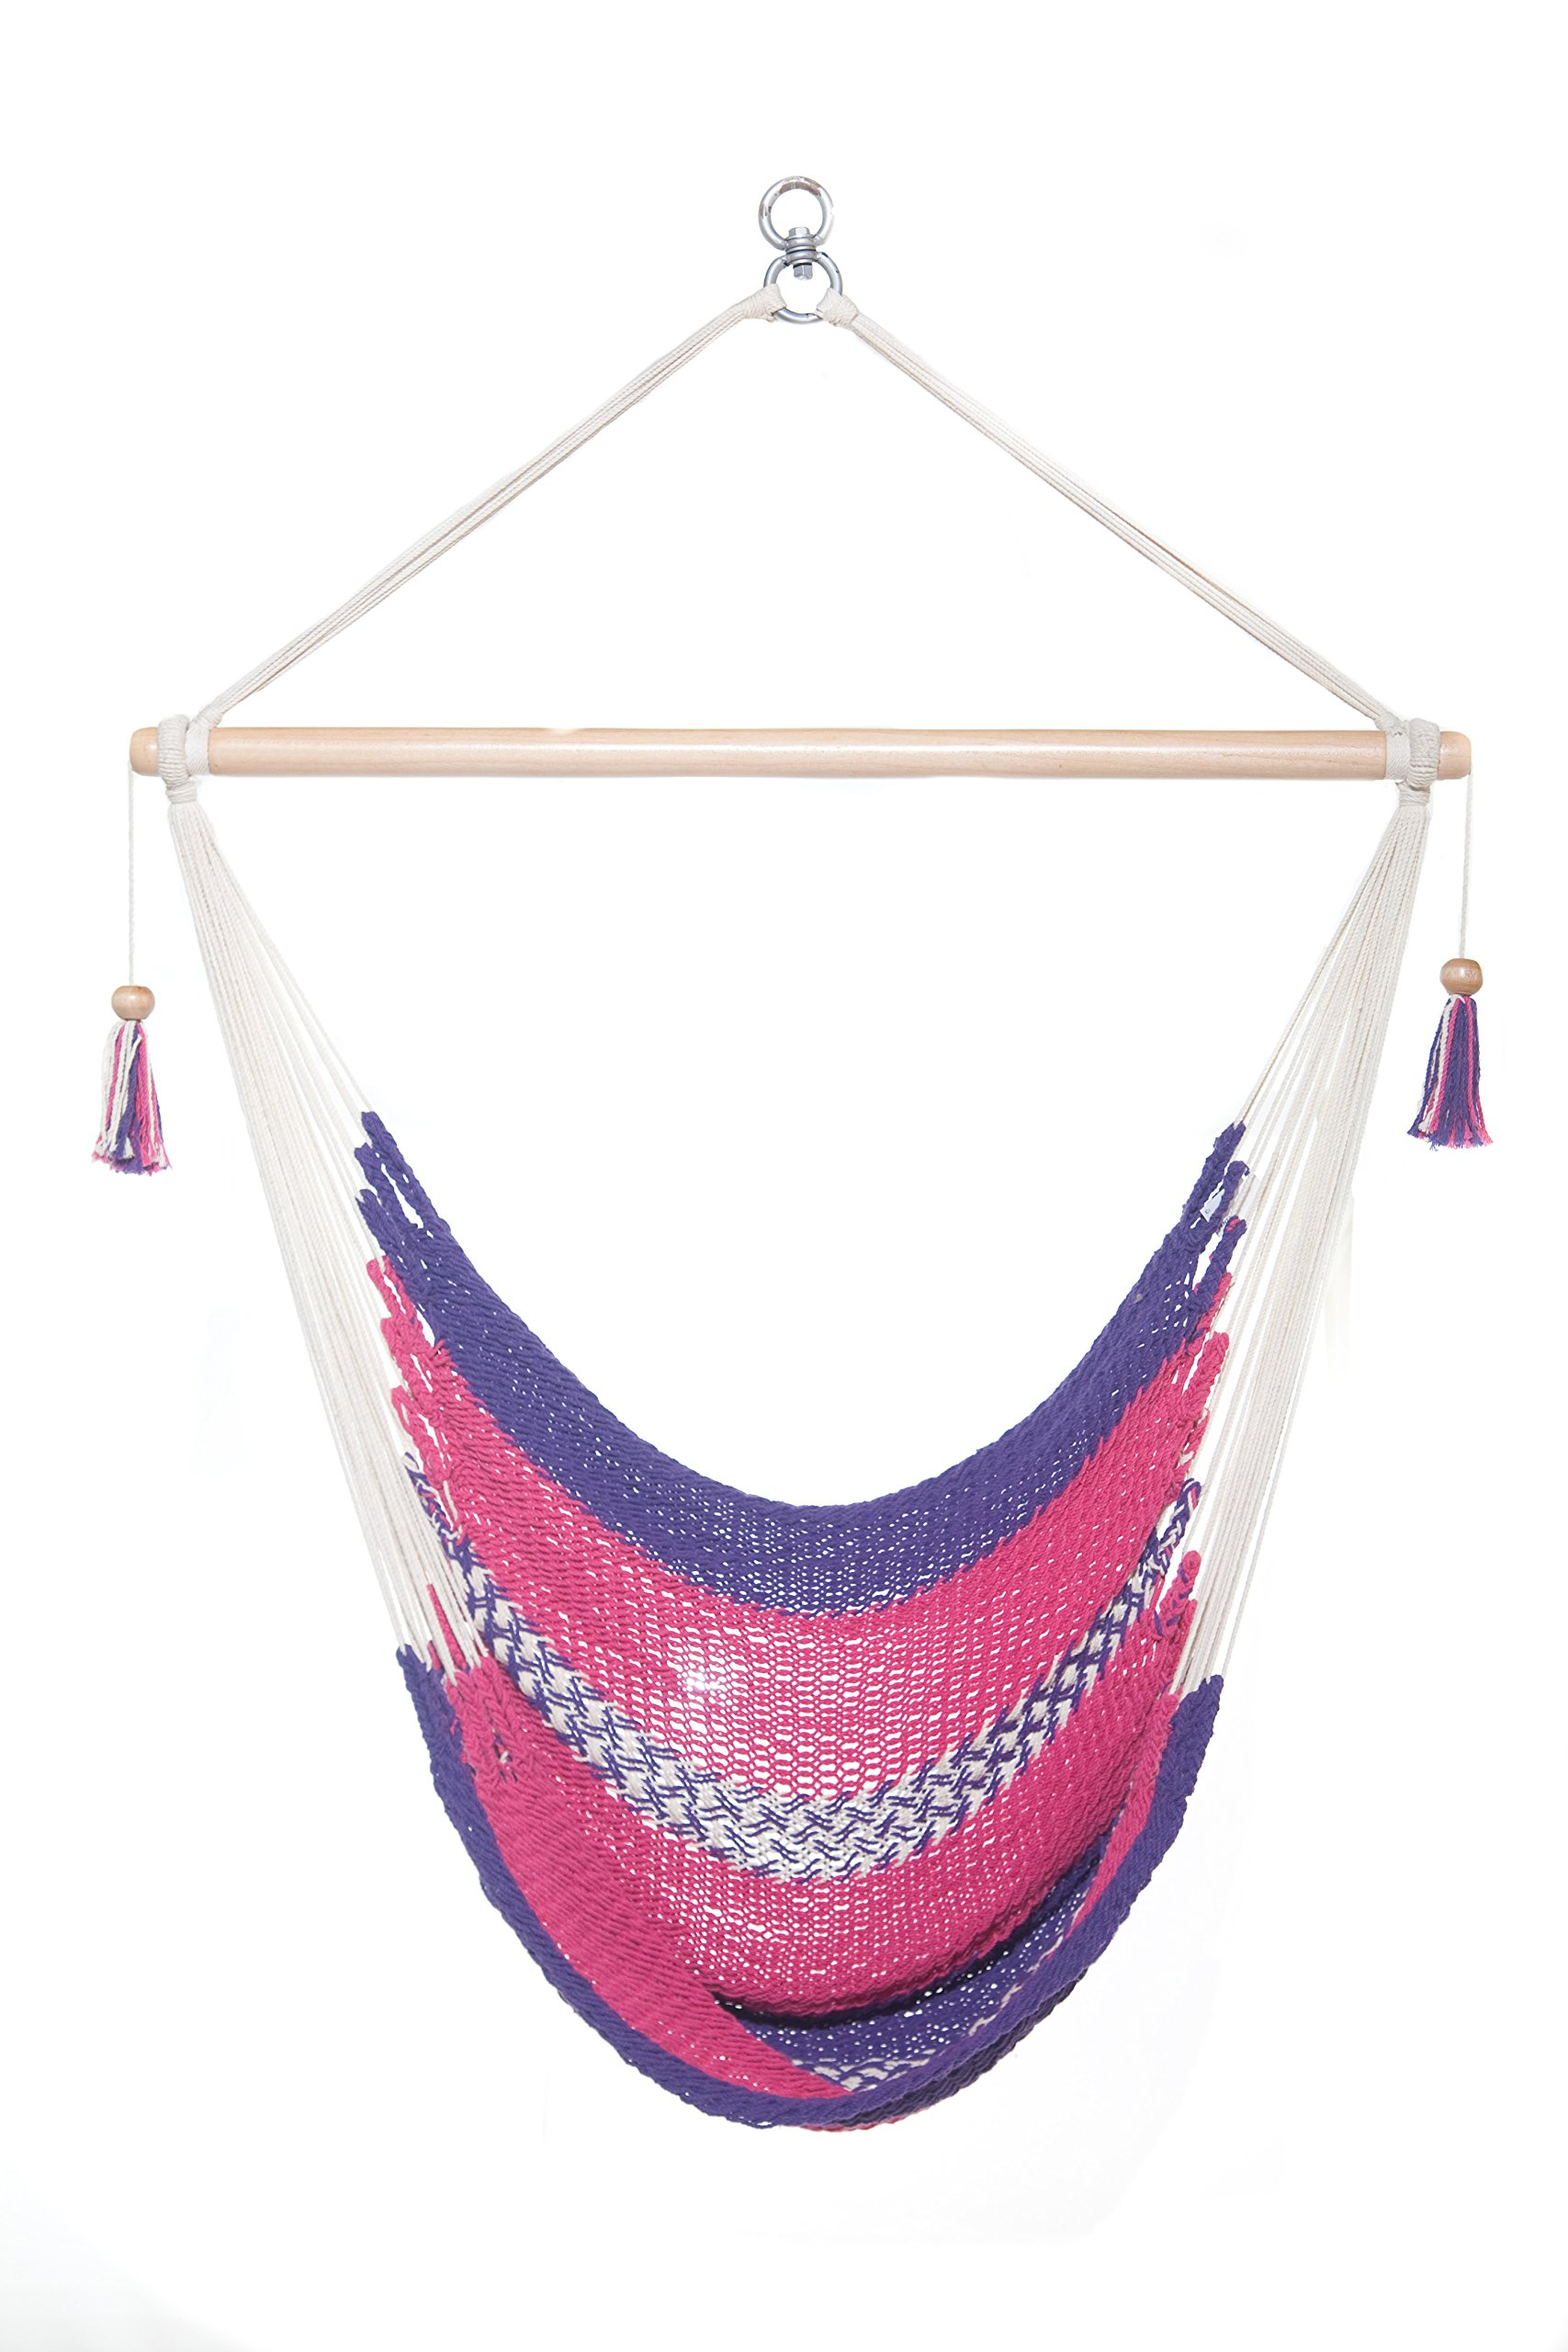 Handmade Hanging Rope Hammock Chair - 100% Handmade With Organic Cotton Swing Seat (Purple) - 100% Handwoven Supporting Workers Disabilities Consists of 100% Manila Cotton made in Central America Great for indoor or outdoor use - patio-furniture, patio, hammocks - 8111oI3l9kL -